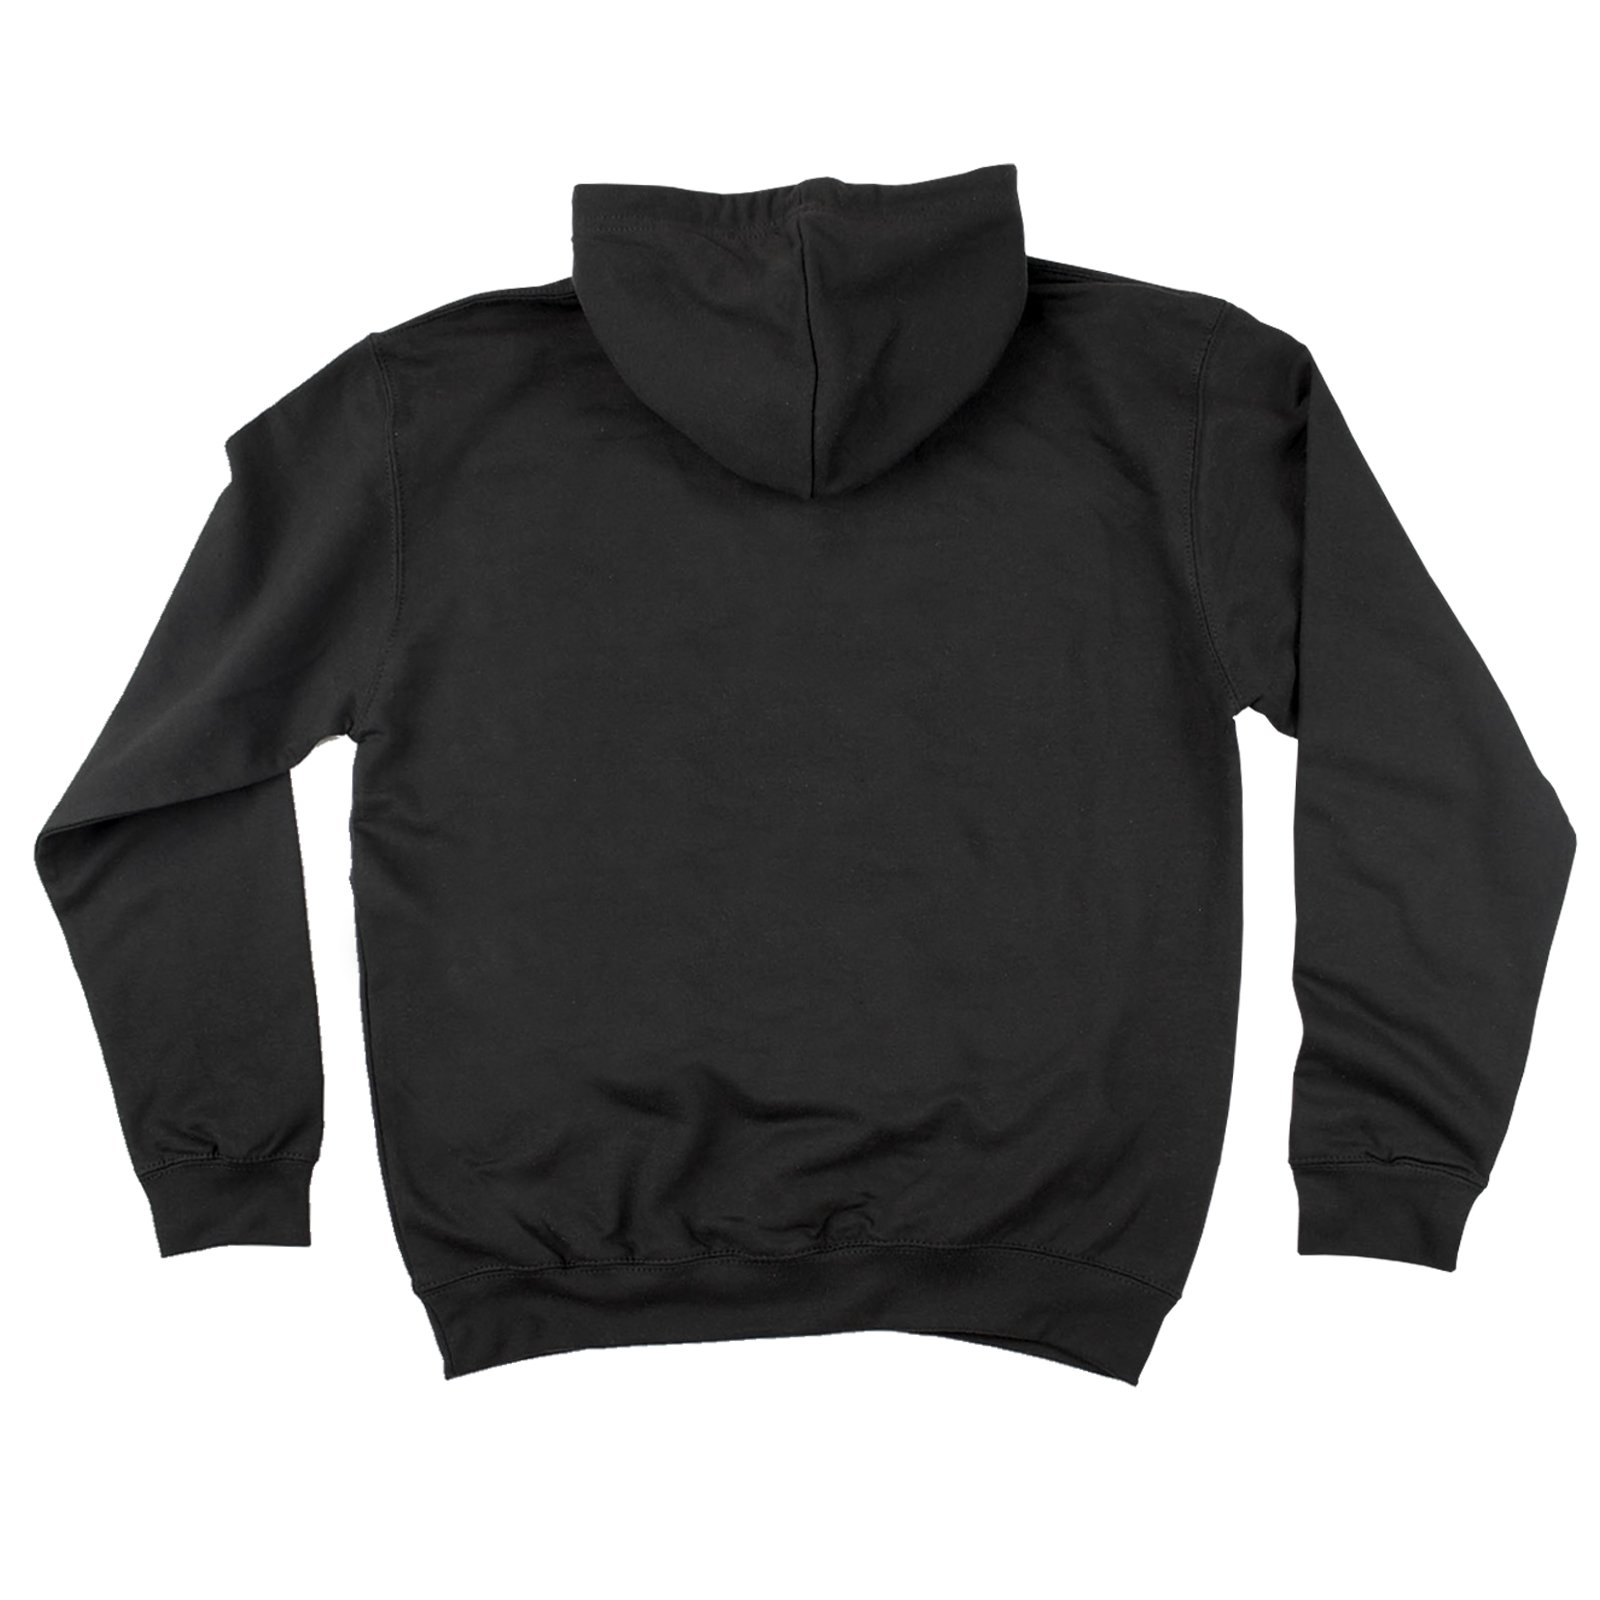 Funny-Novelty-Hoodie-Hoody-hooded-Top-Cat-Enthusiast thumbnail 5